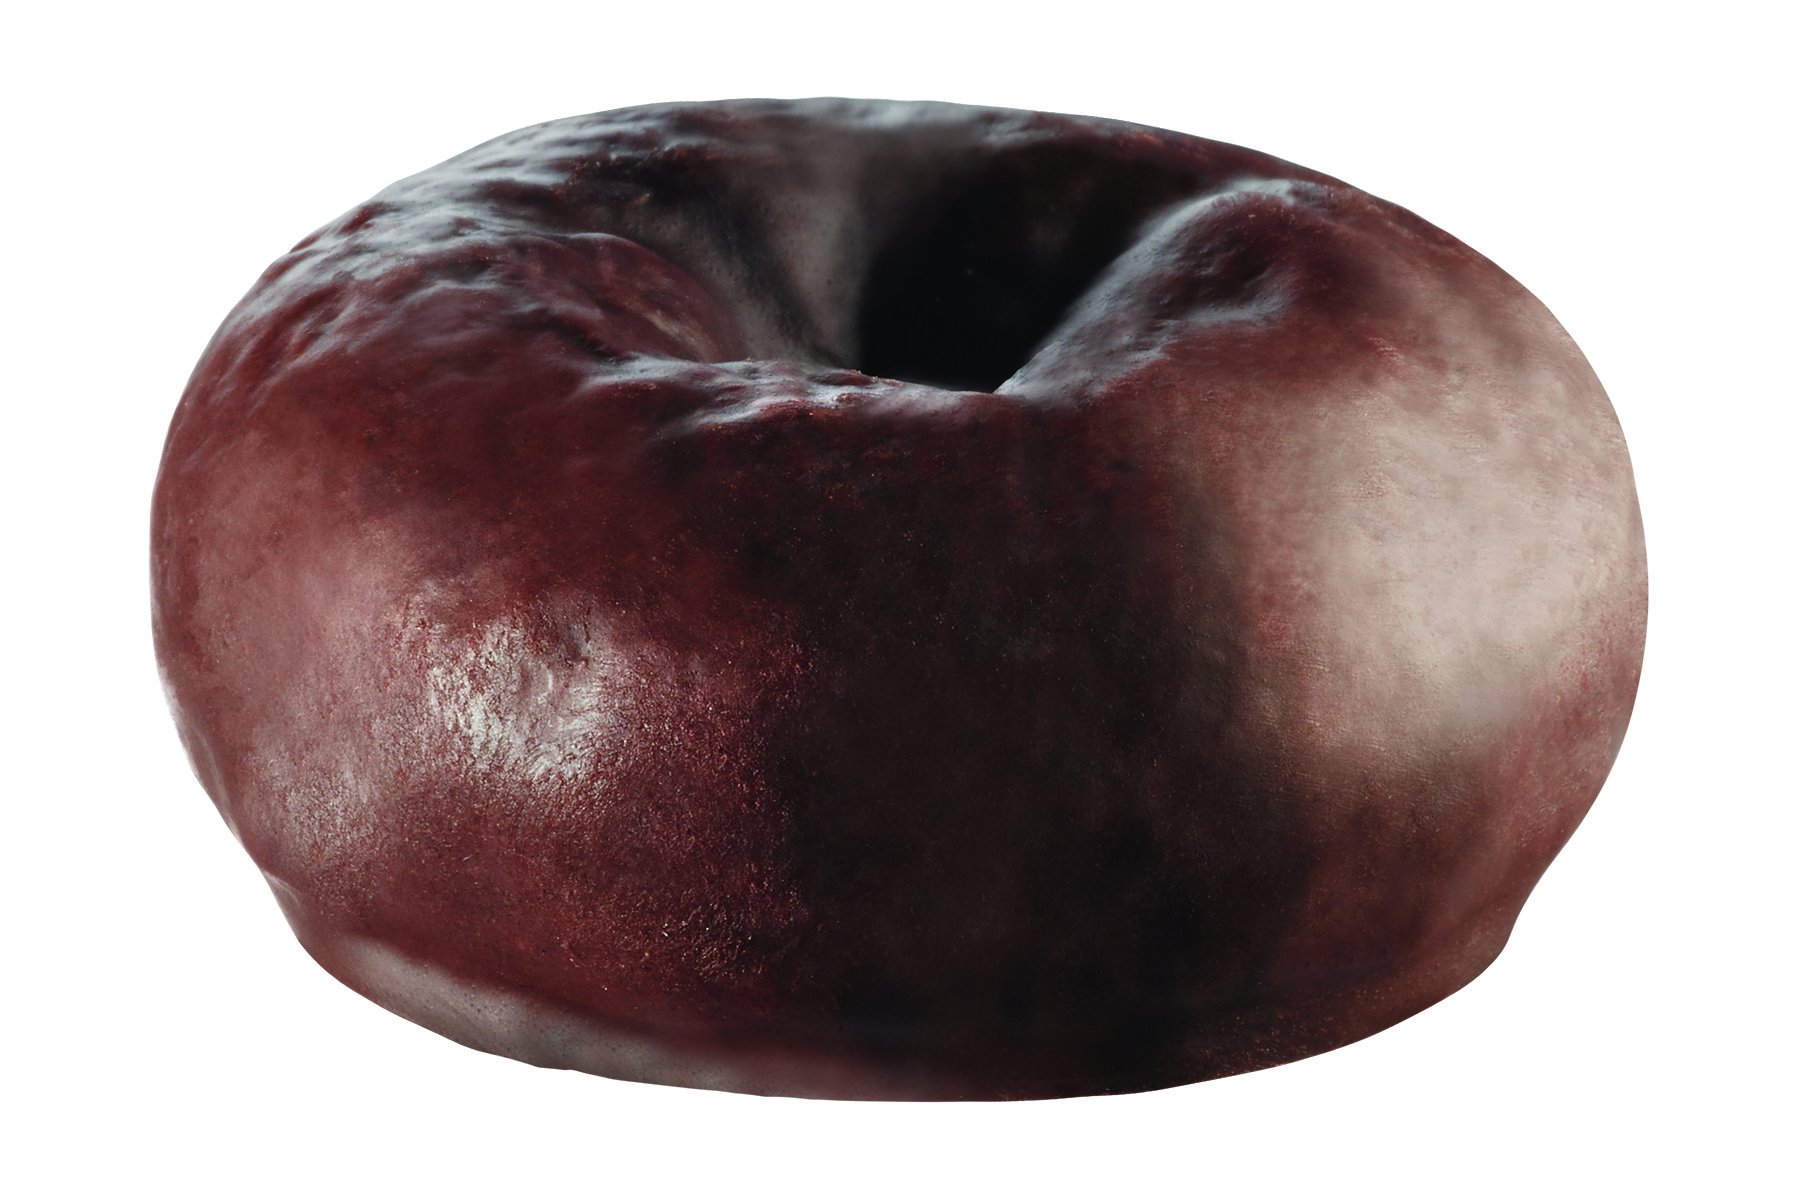 Hostess Donettes Mini Donuts, Double Chocolate, 3 Ounce, 10 Count by Hostess (Image #4)